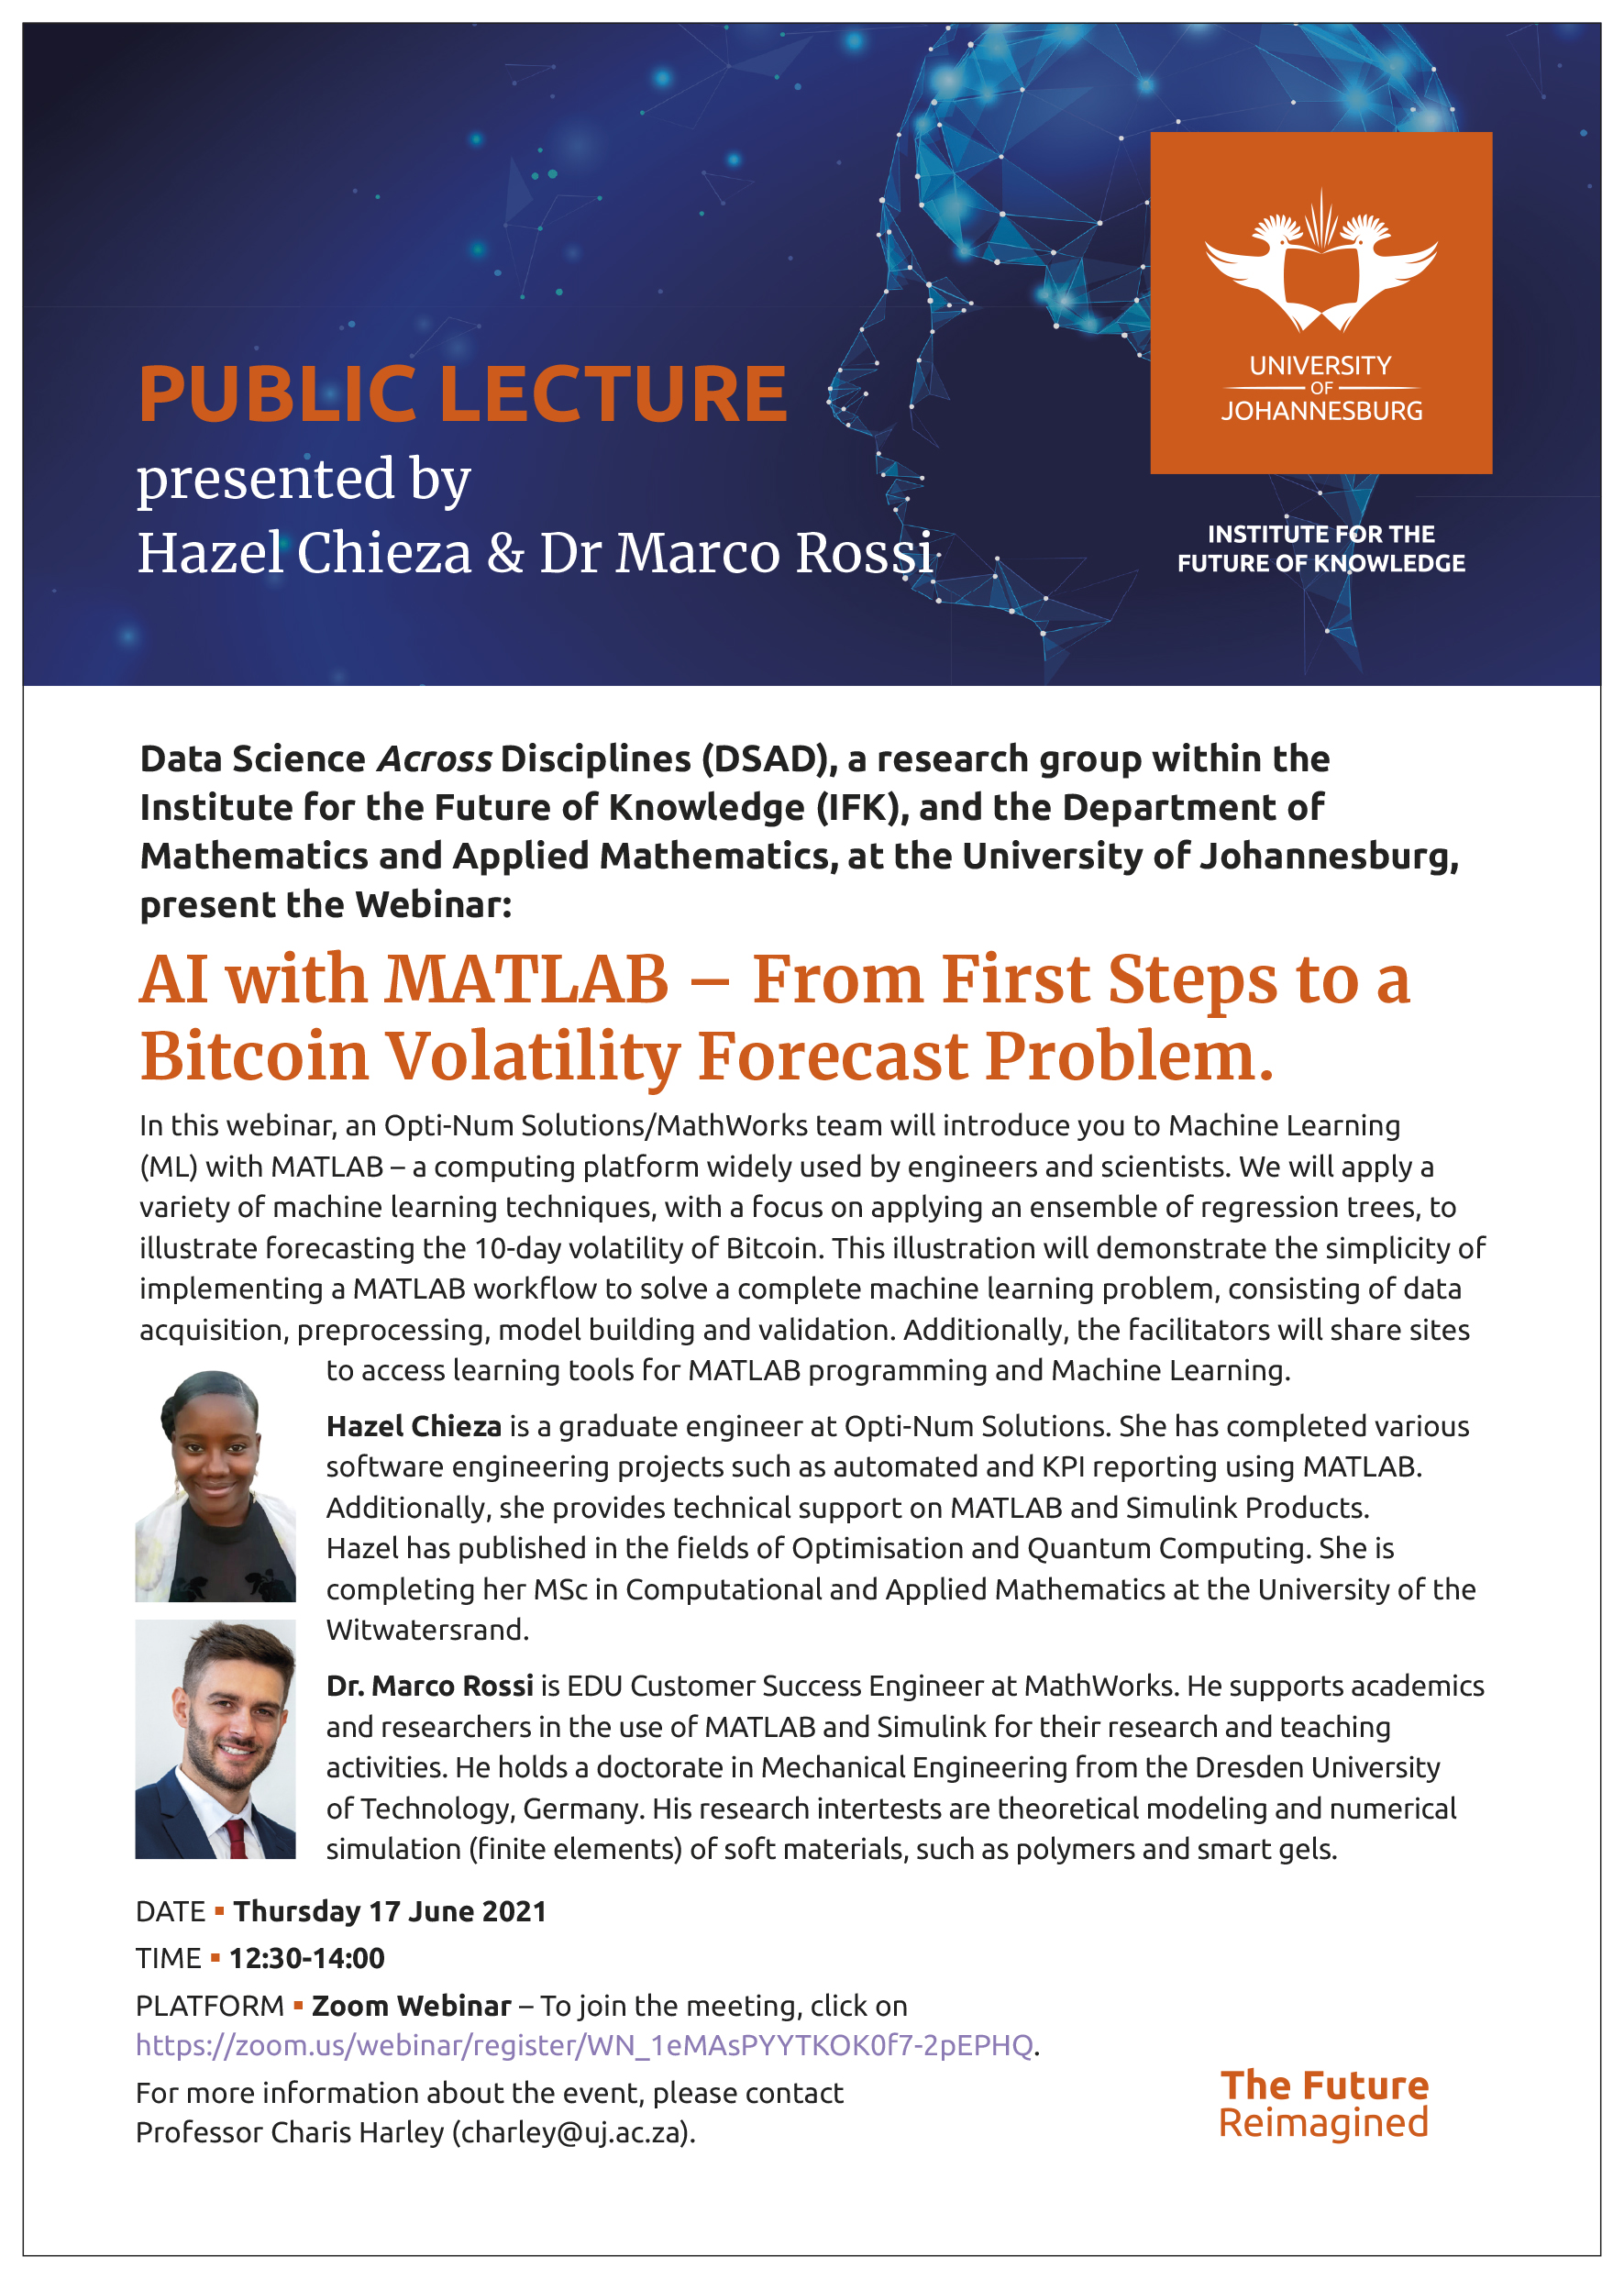 Webinar: AI with MATLAB – From First Steps to a Bitcoin Volatility Forecast Problem